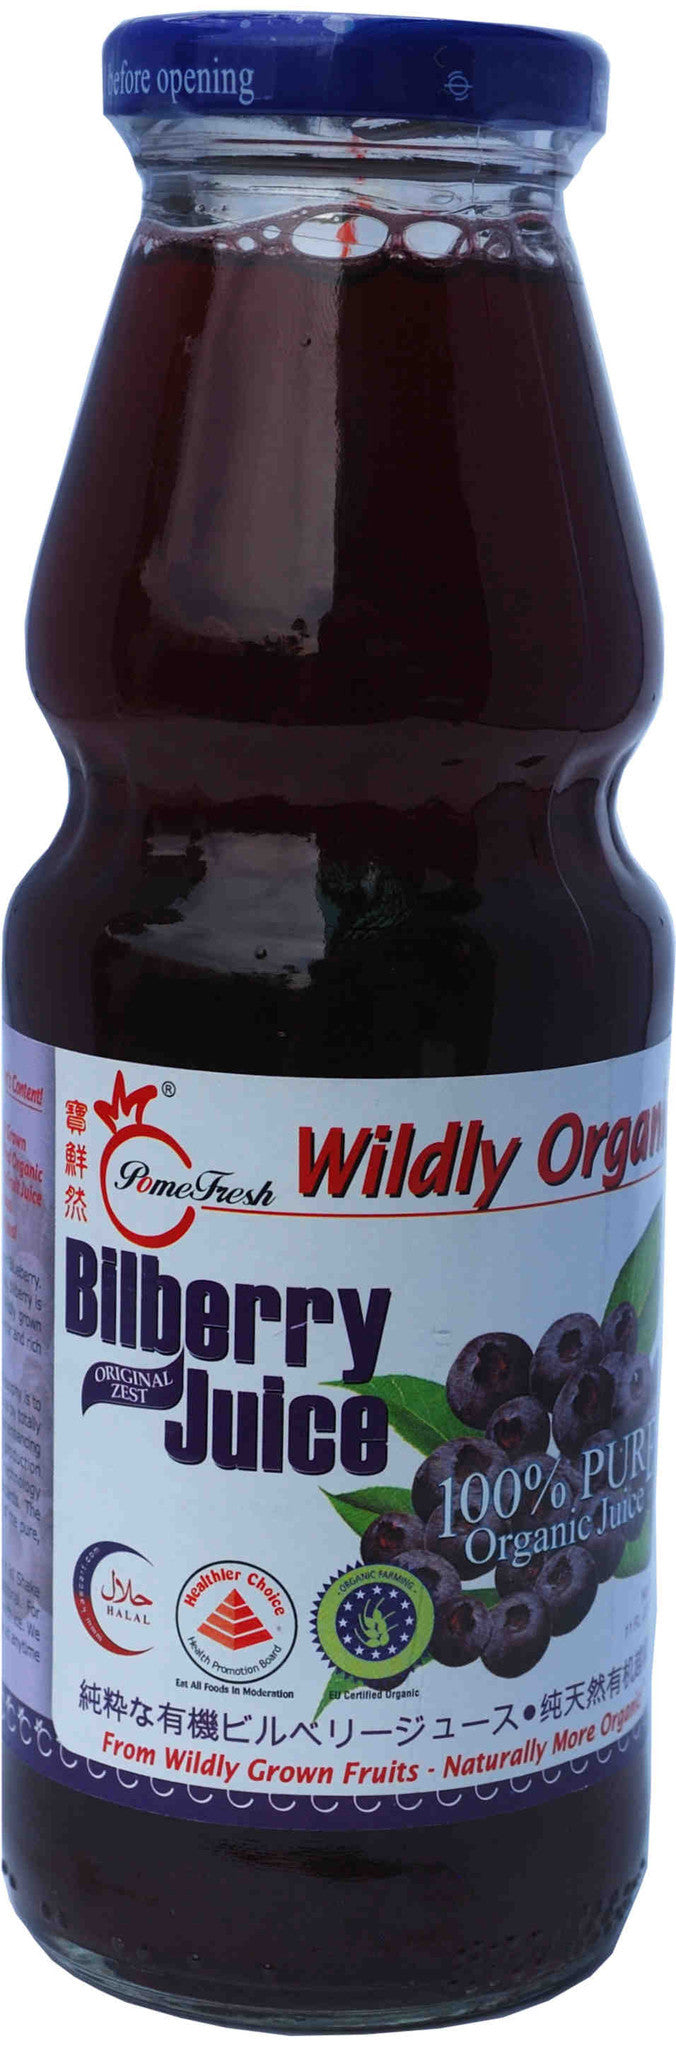 Buy 2 Cartons (40 Bottles) 100% Organic Bilberry Juice (314ml) - SAVE $20